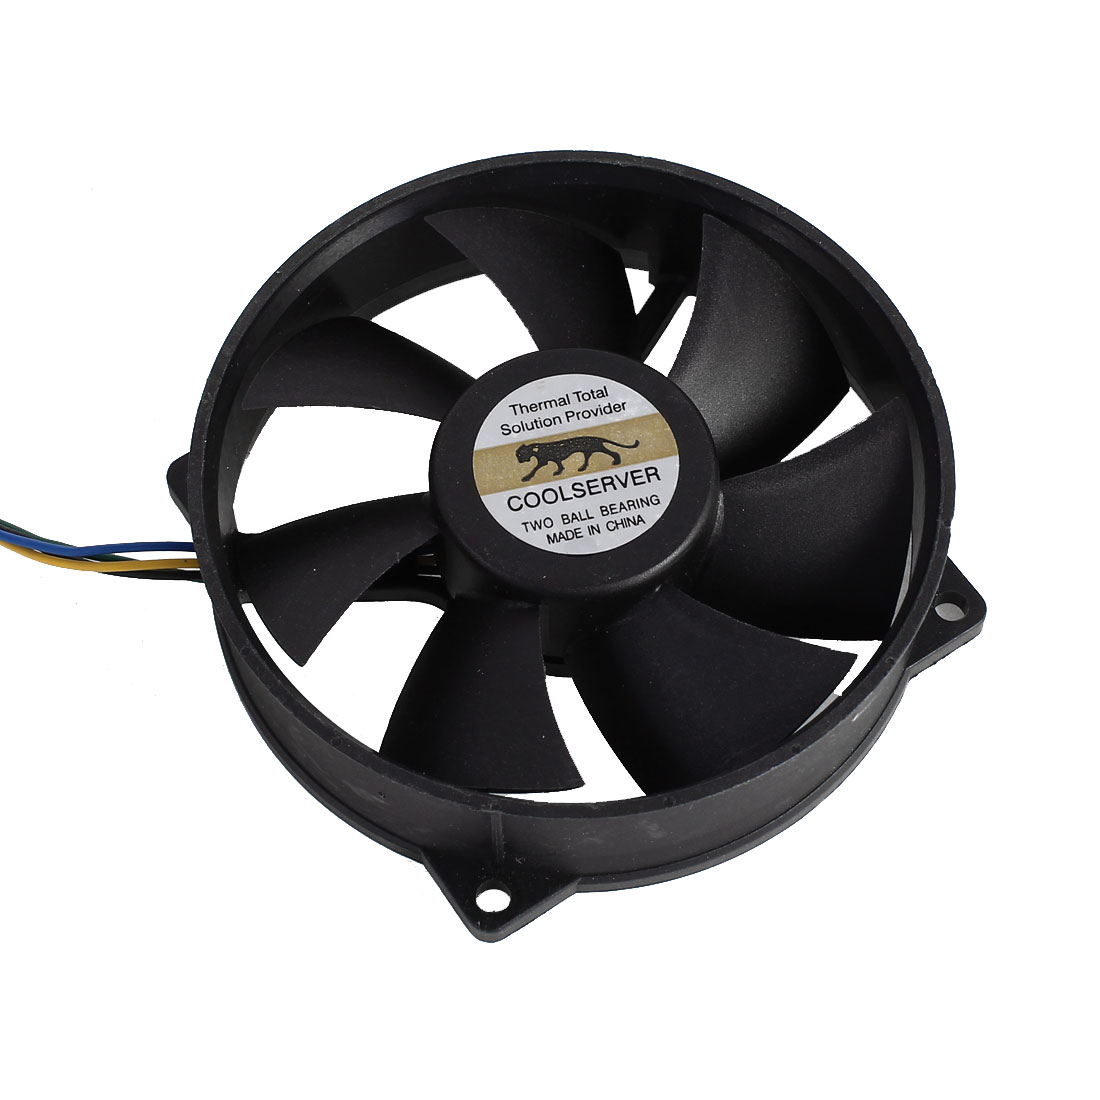 F129025BU 90mmx25mm DC12V 0.38A 4 Pins Computer Case CPU Cooler Cooling Fan Black